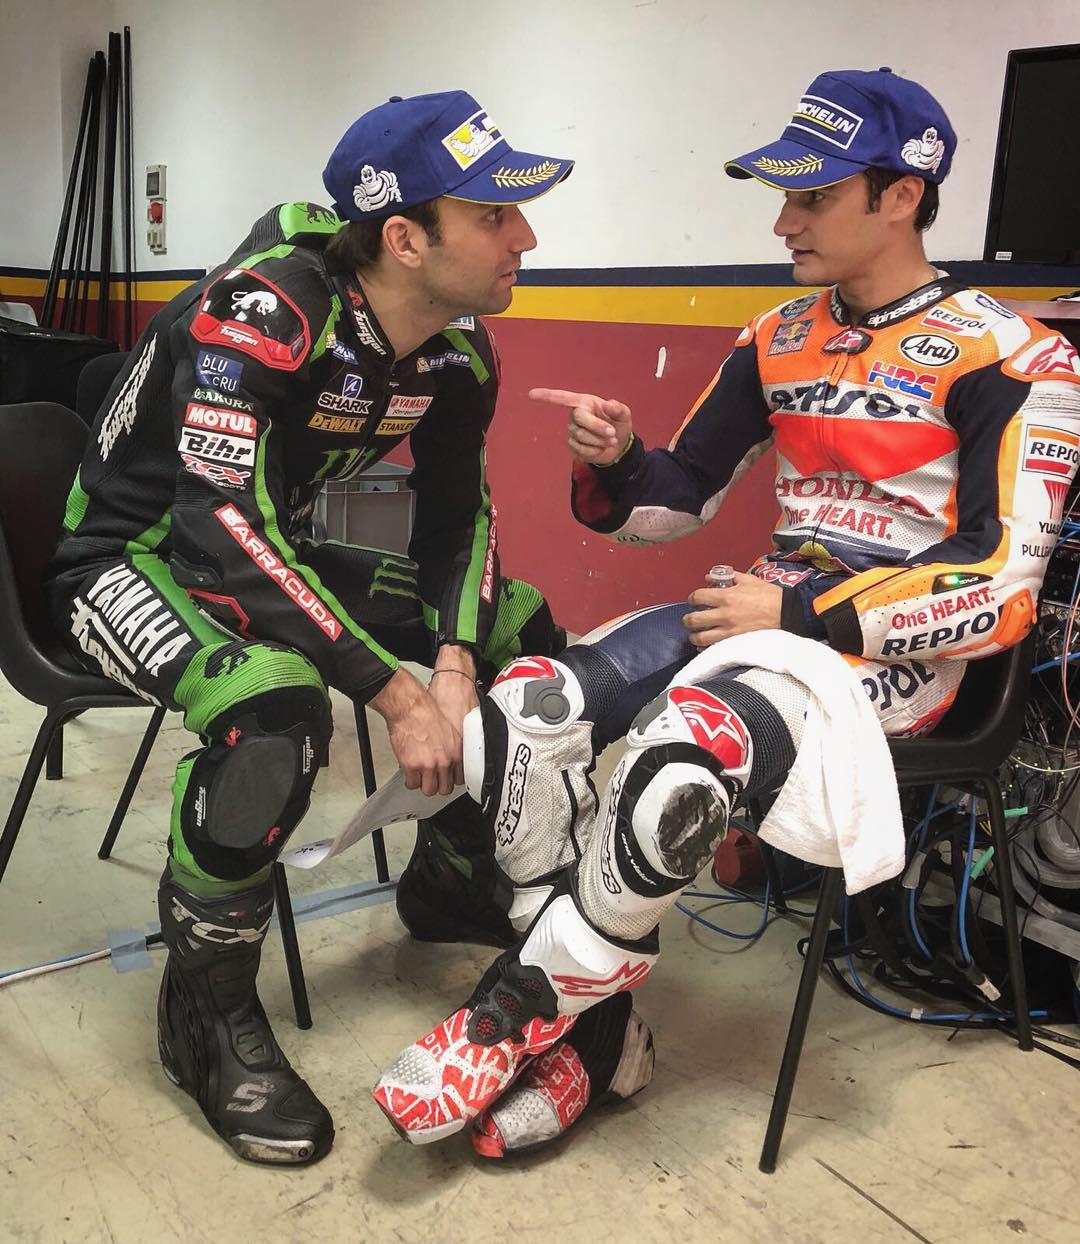 CaptionThis!  johannzarcoofficial05 26danipedrosa ValenciaGP MotoGP FinalShowdown CaptionCompetition